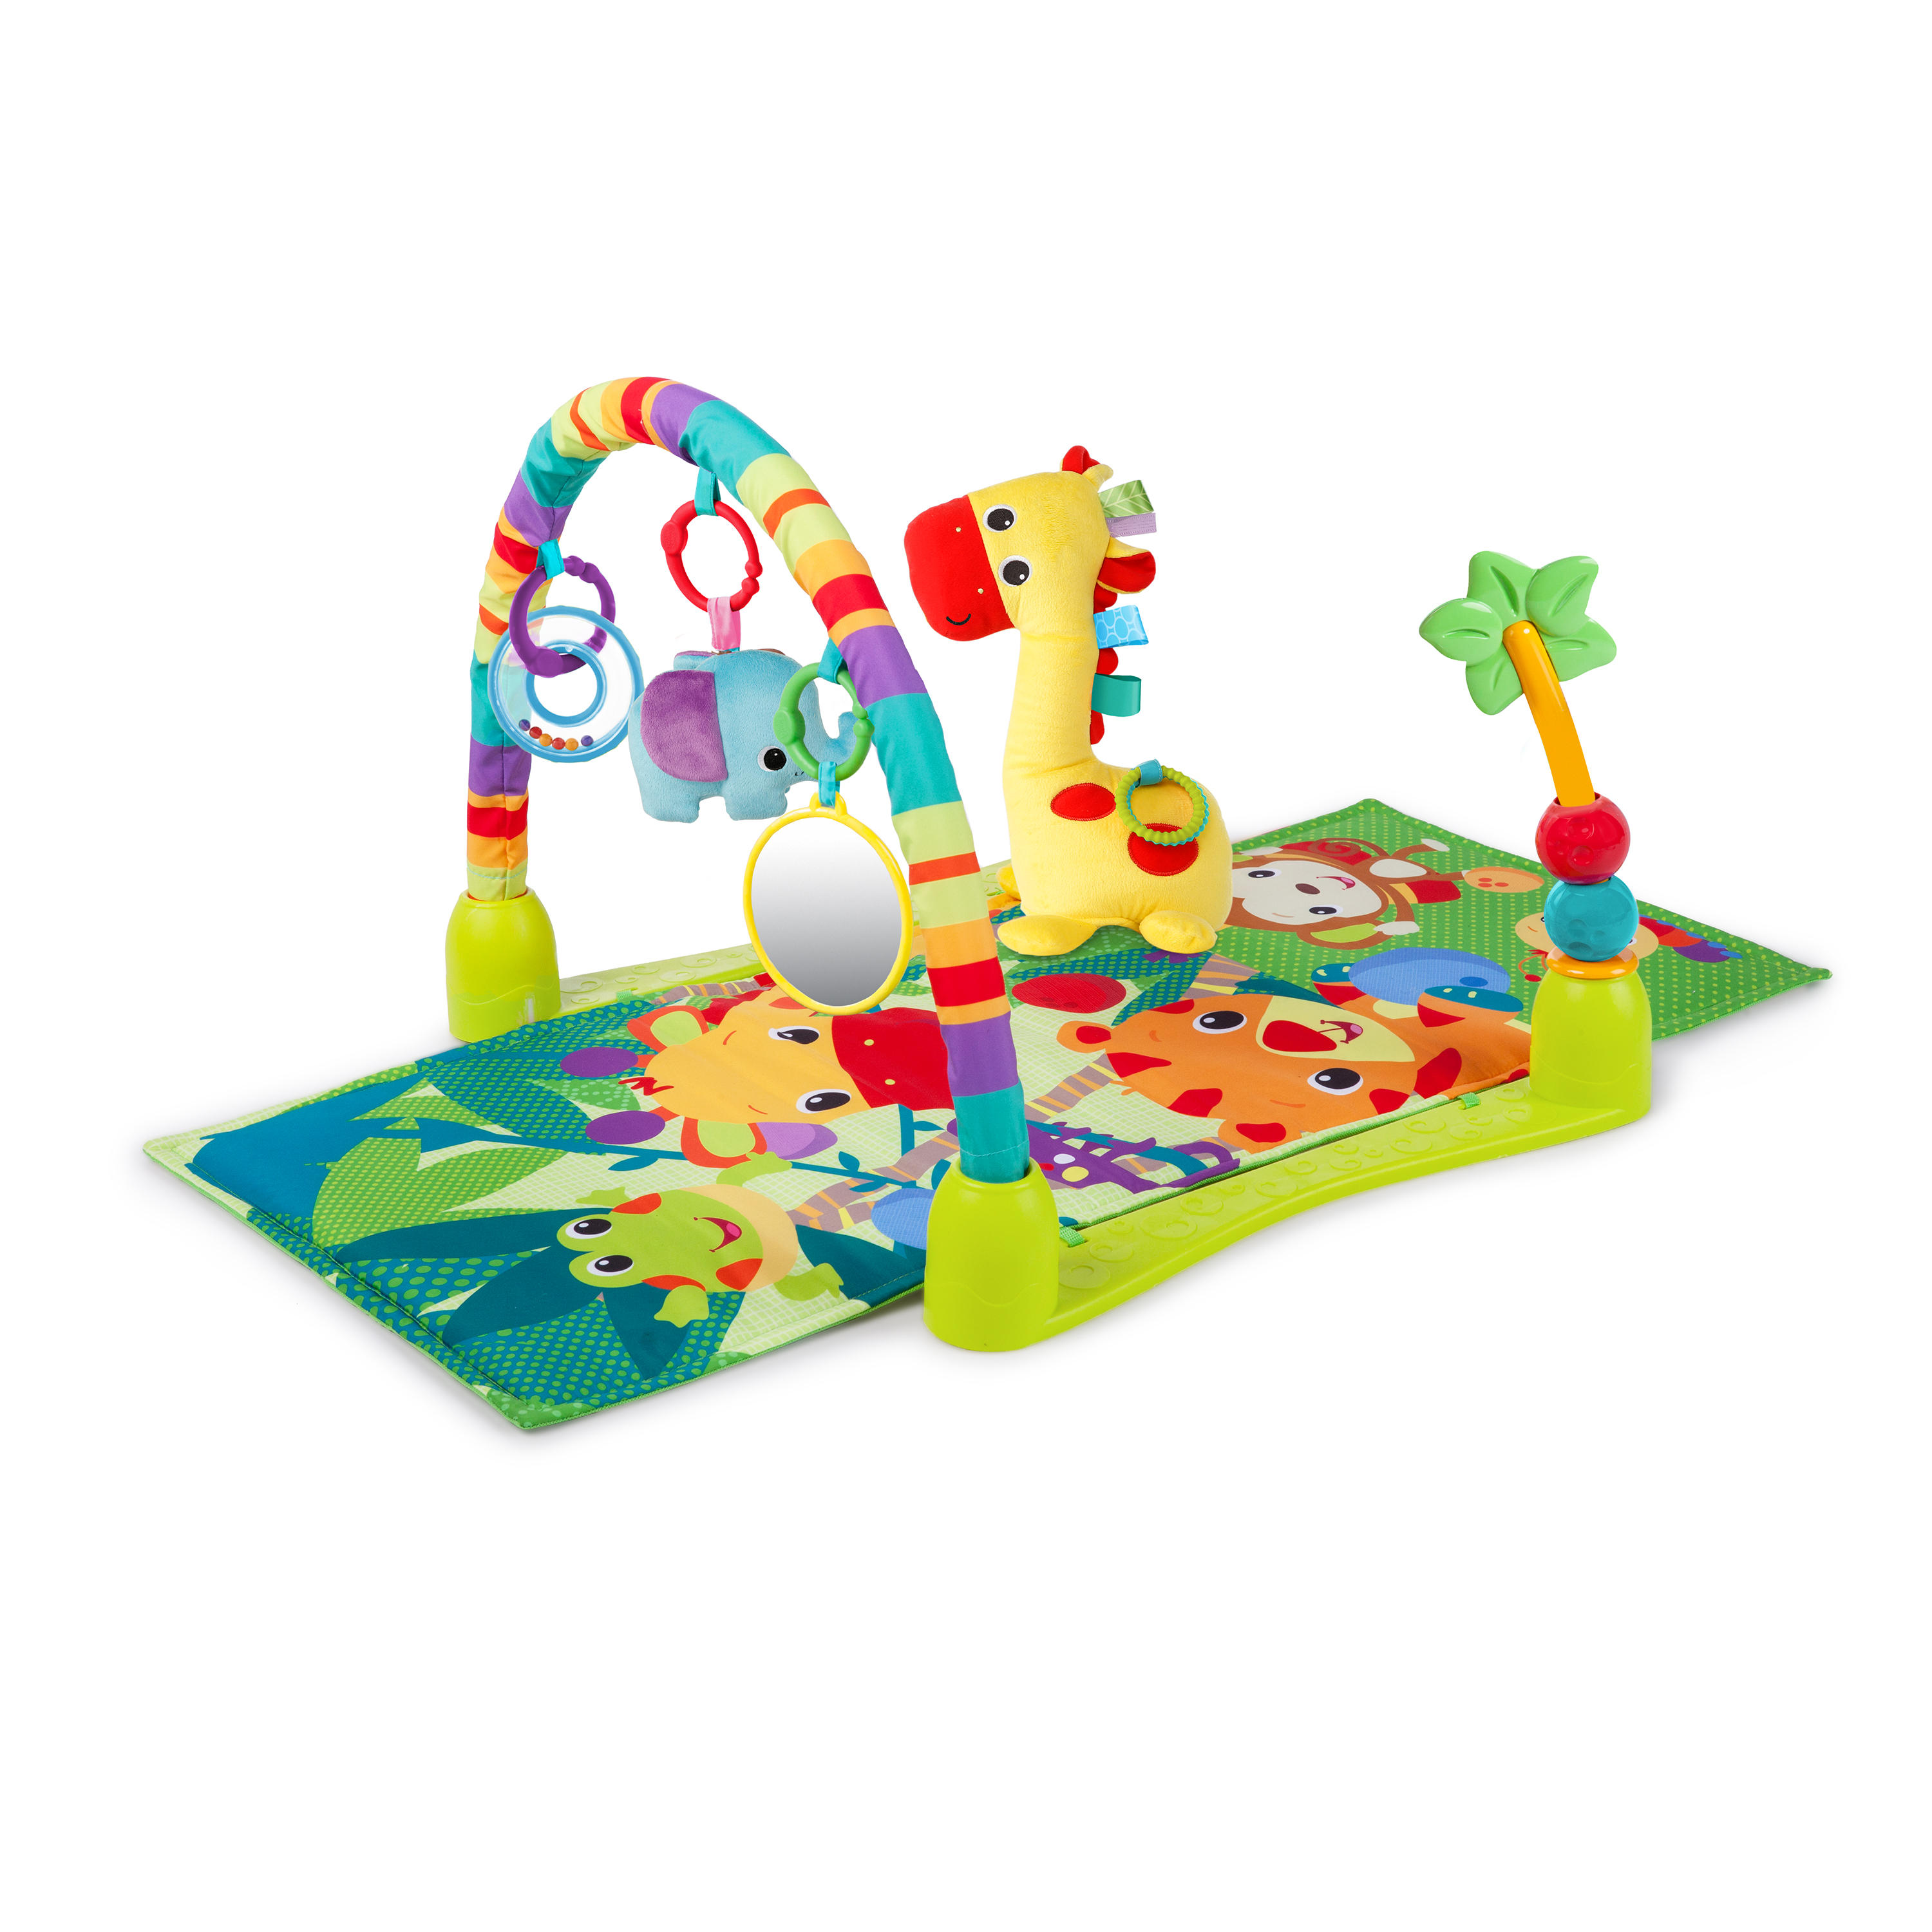 Bright Starts 4 In 1 Jungle Discovery Activity Gym